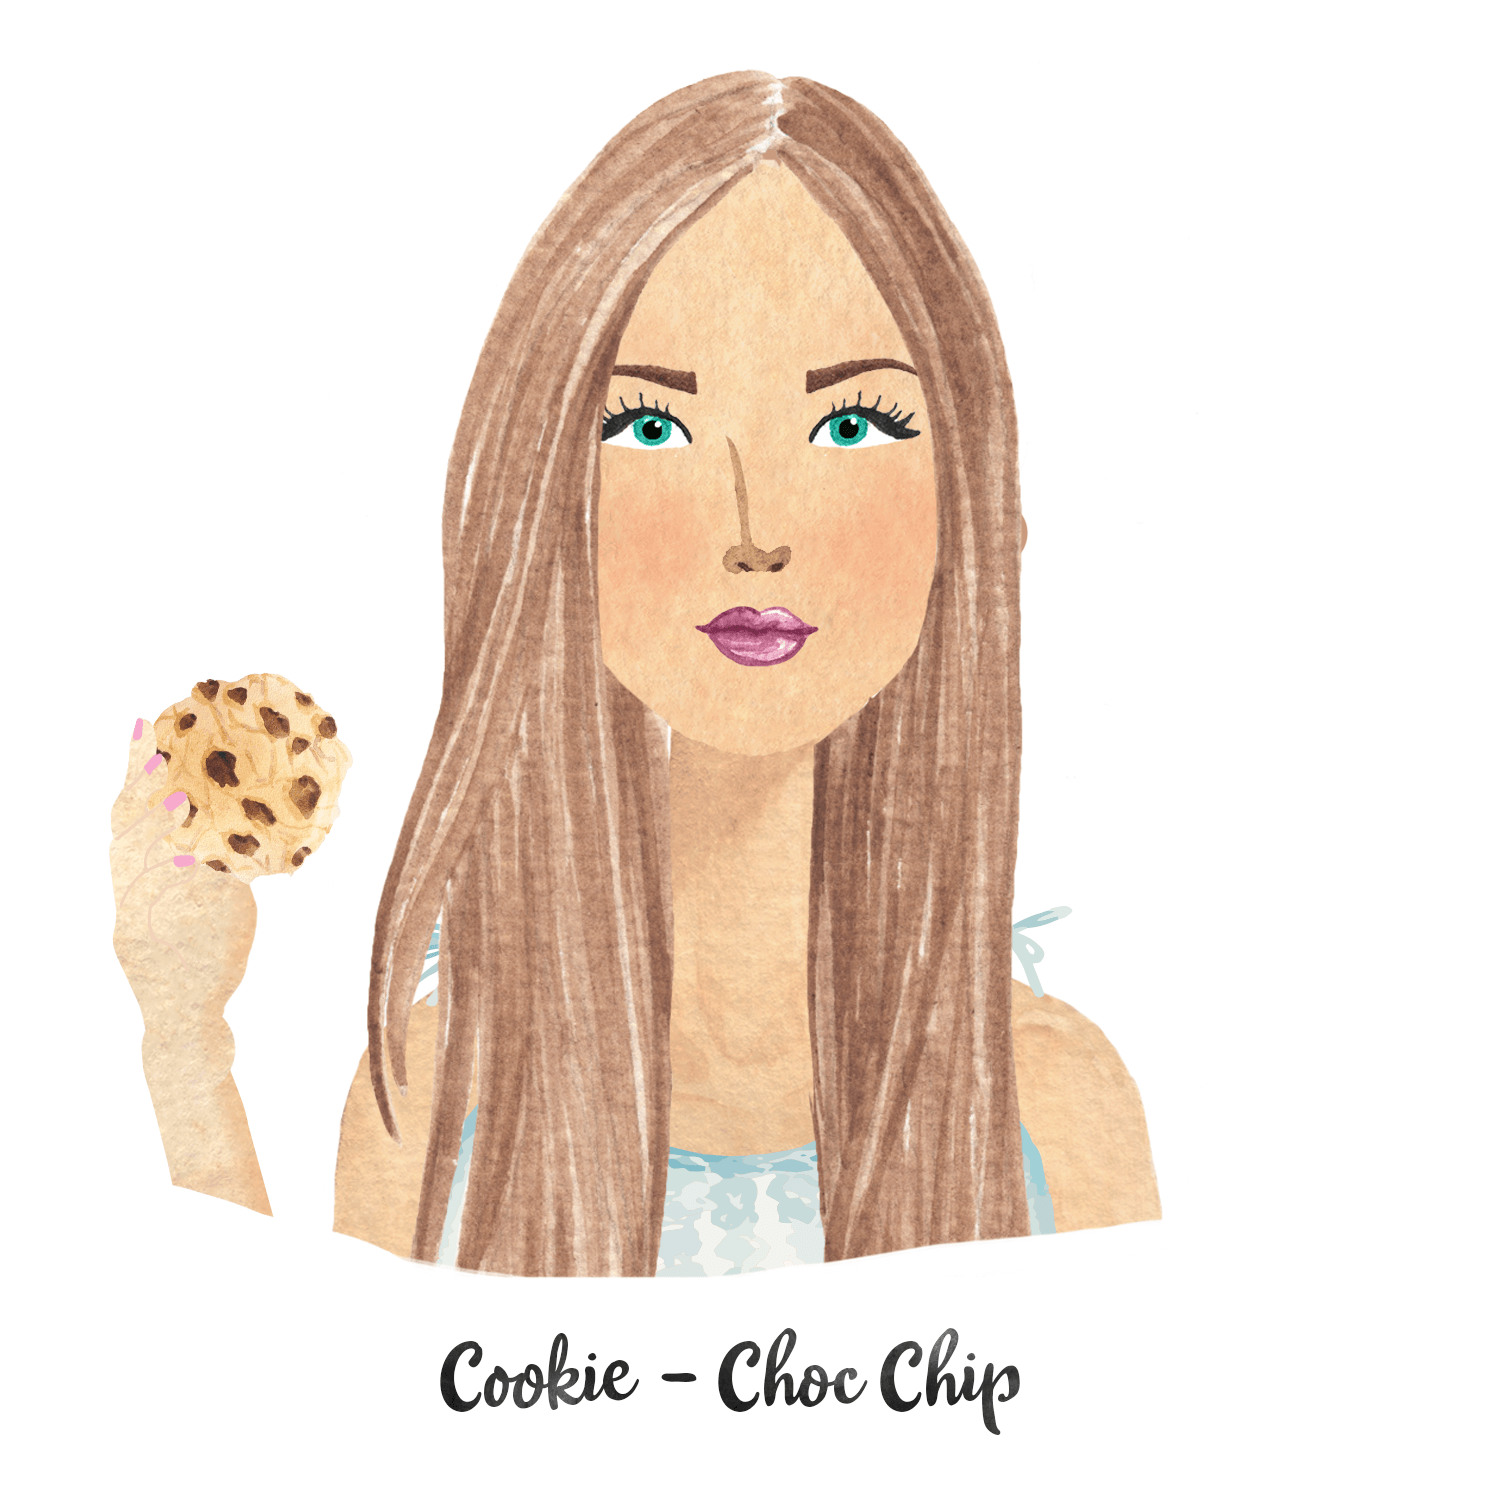 Cookie - Choc Chip.png